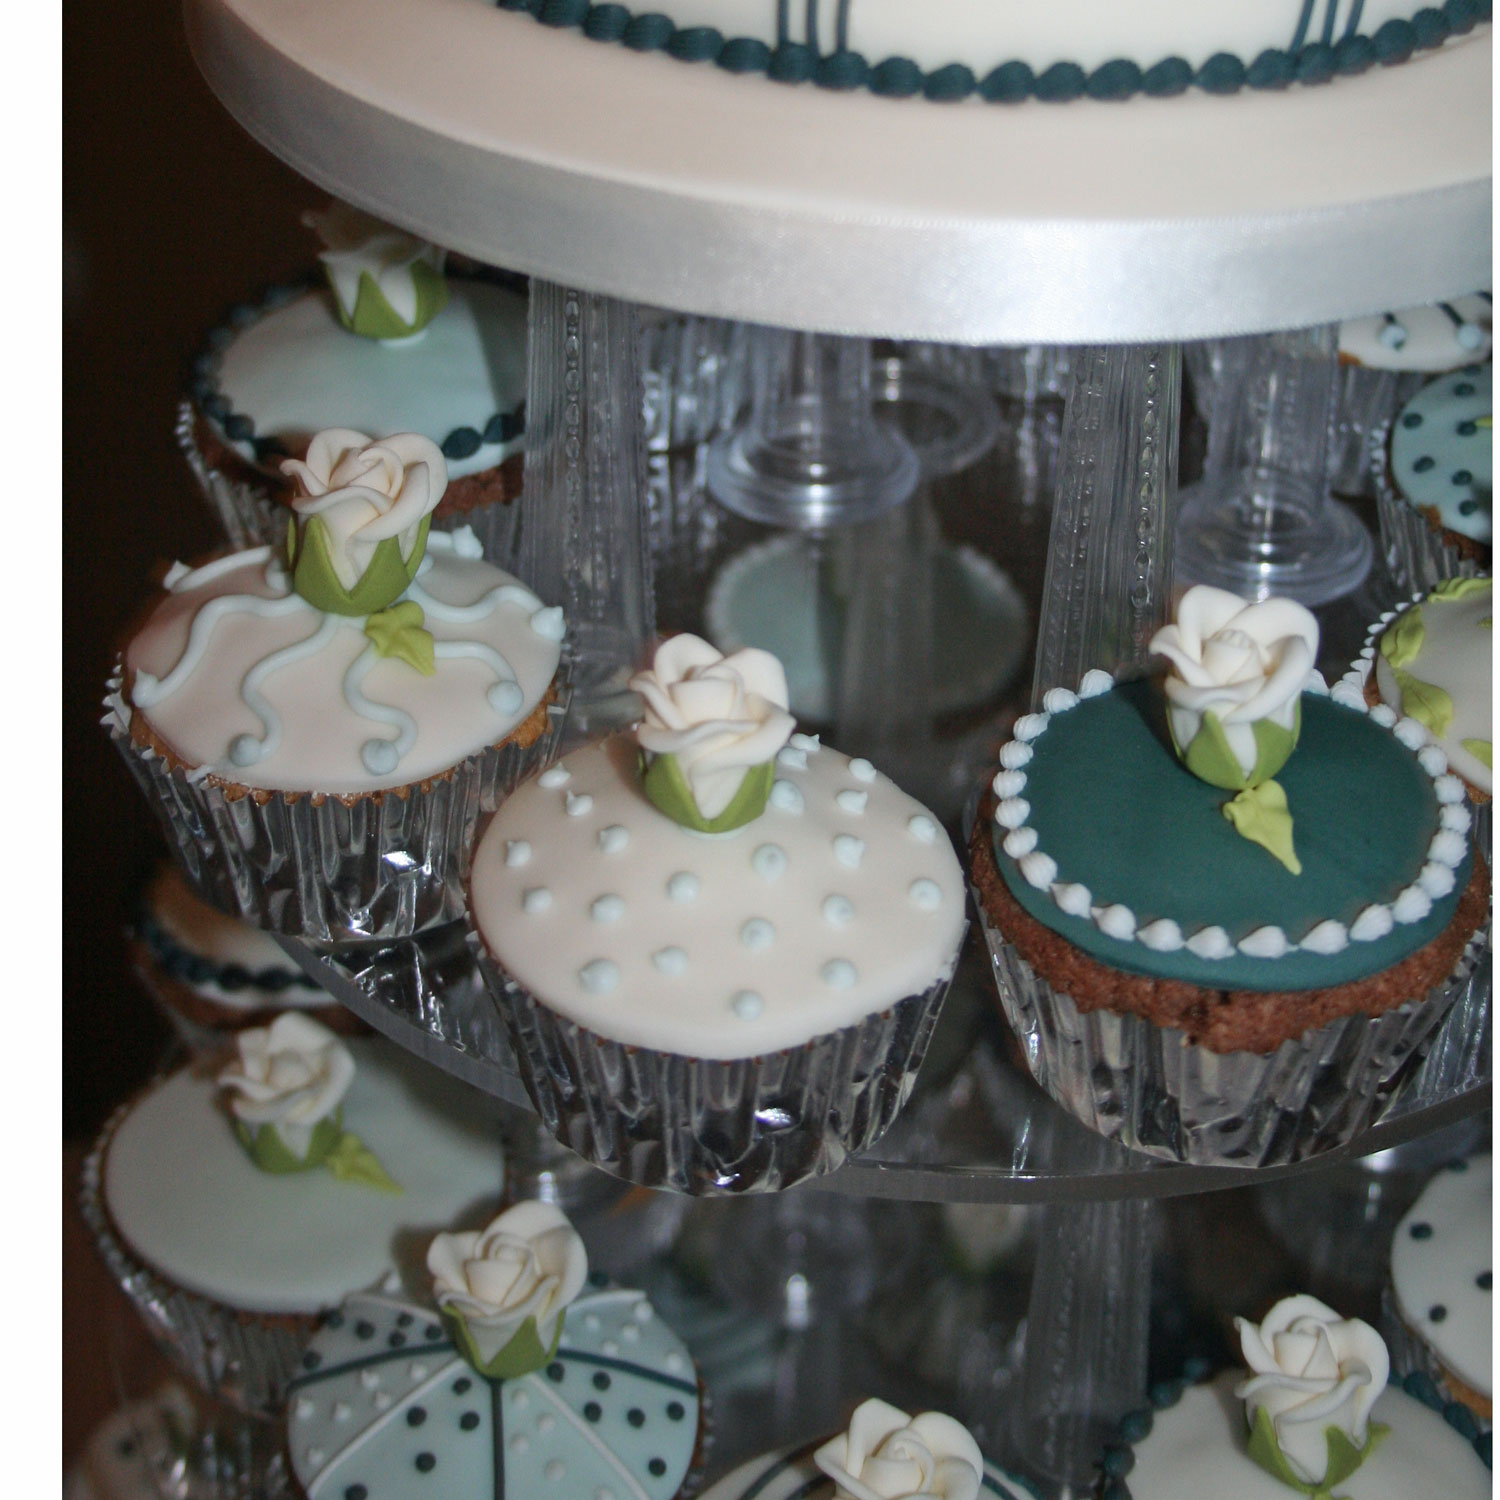 Wedding Cupcakes in Teal.